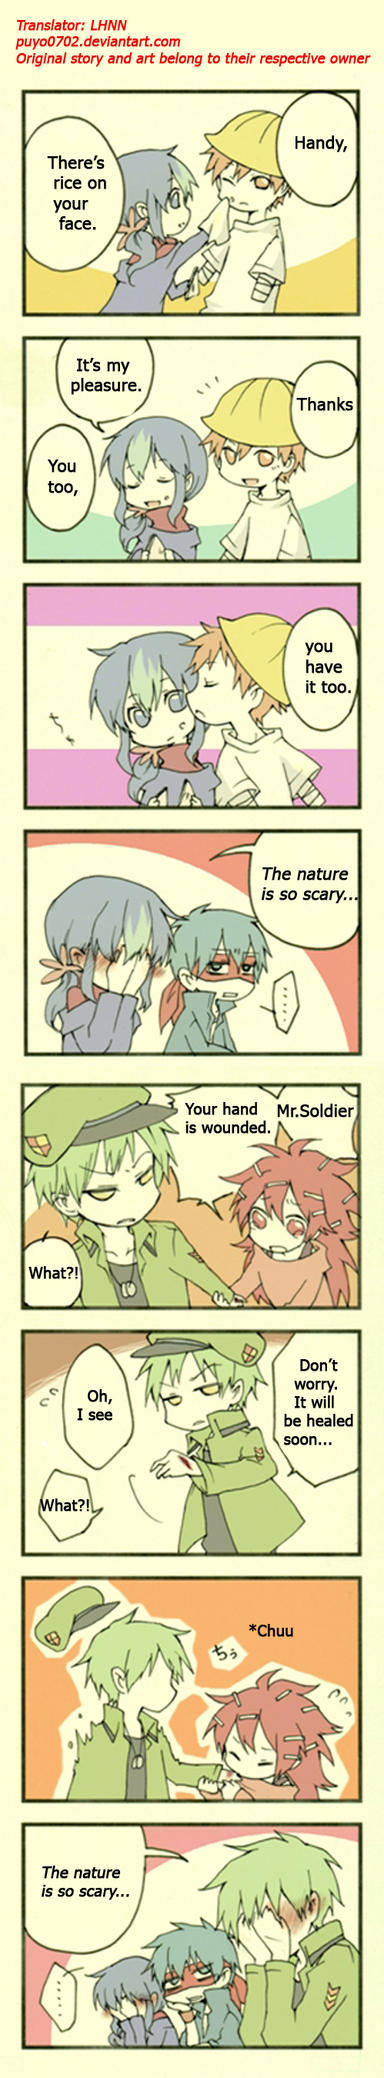 HTF doujinshi translation #17: The nature is scary by minglee7294